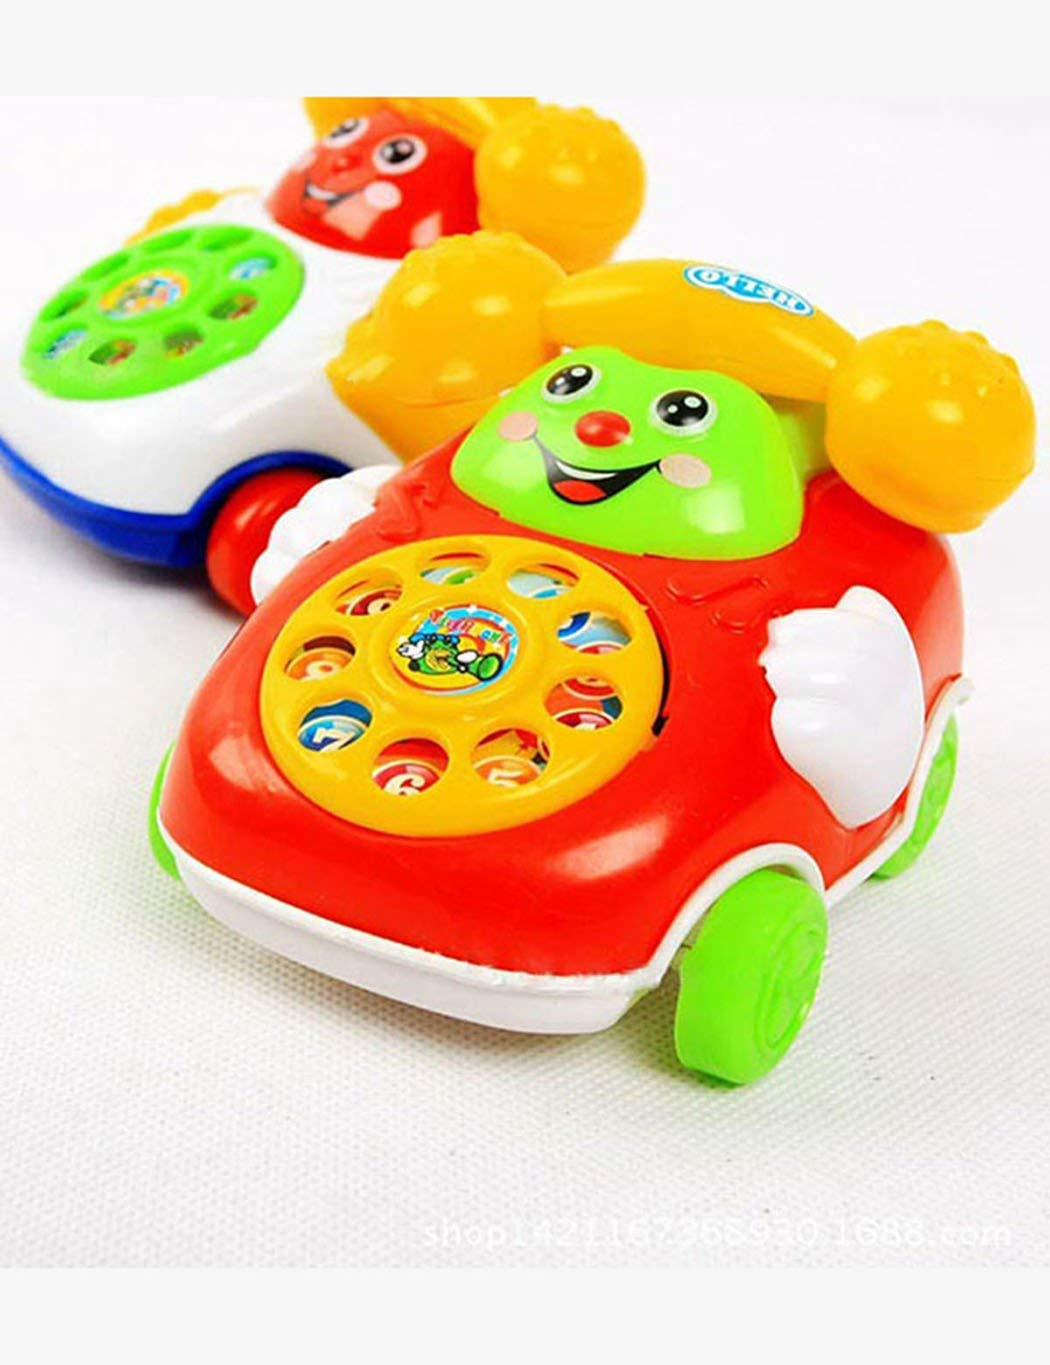 Yitrend Kids Baby Sound Toys Music Cartoon Car Phone Kids Educational Developmental Pull Line Toys Push & Pull Toys (Photo Color)